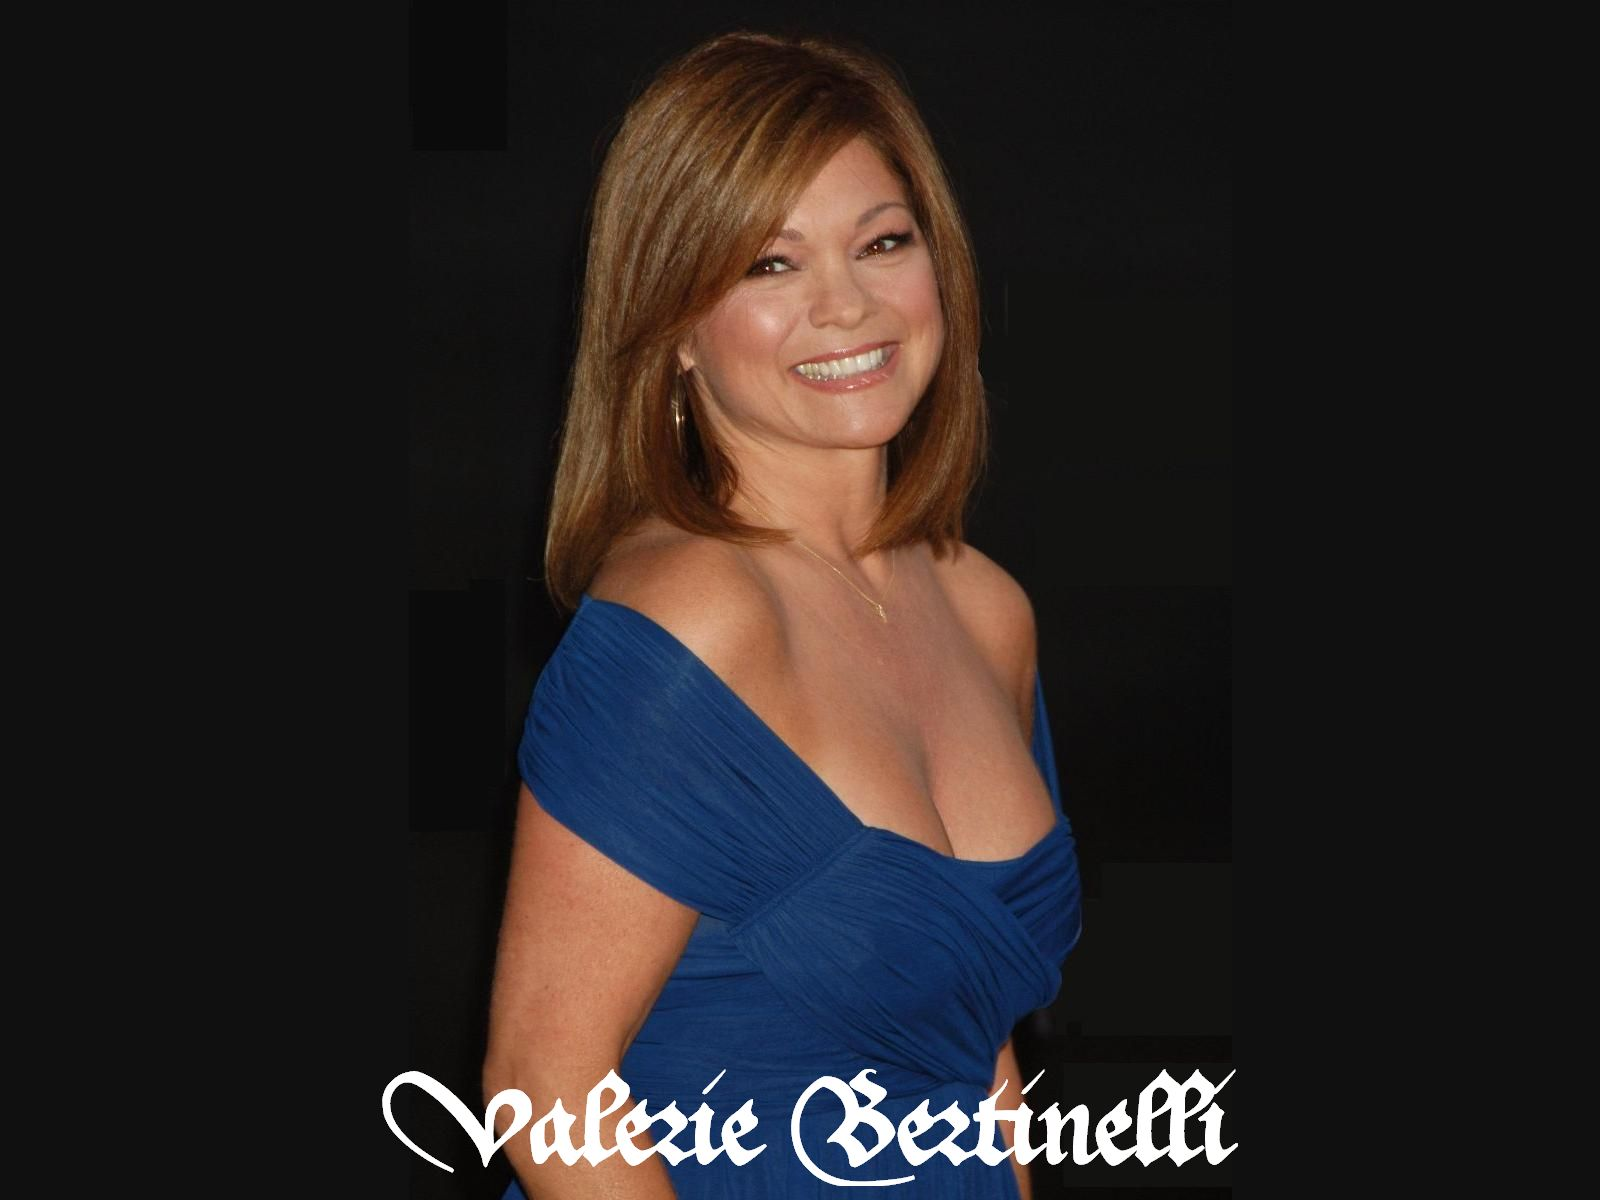 Valerie bertinelli before and after pictures